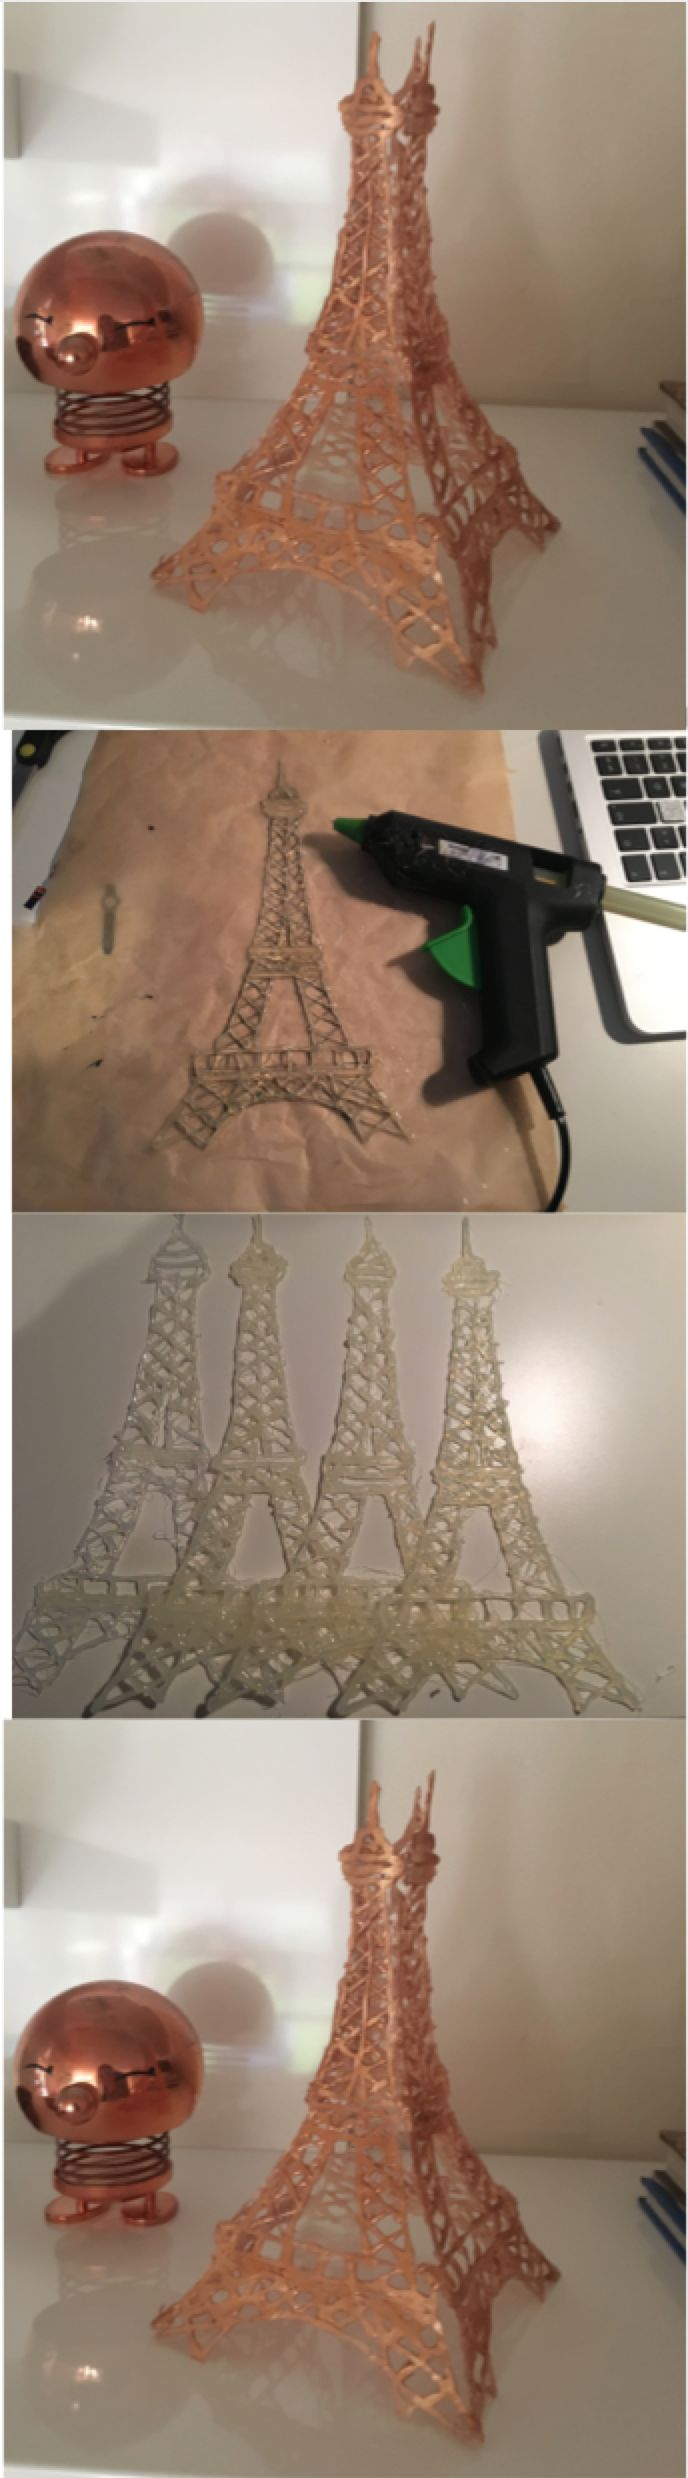 Diy Eiffel Tower with a glue gun <3 easy to make ;)